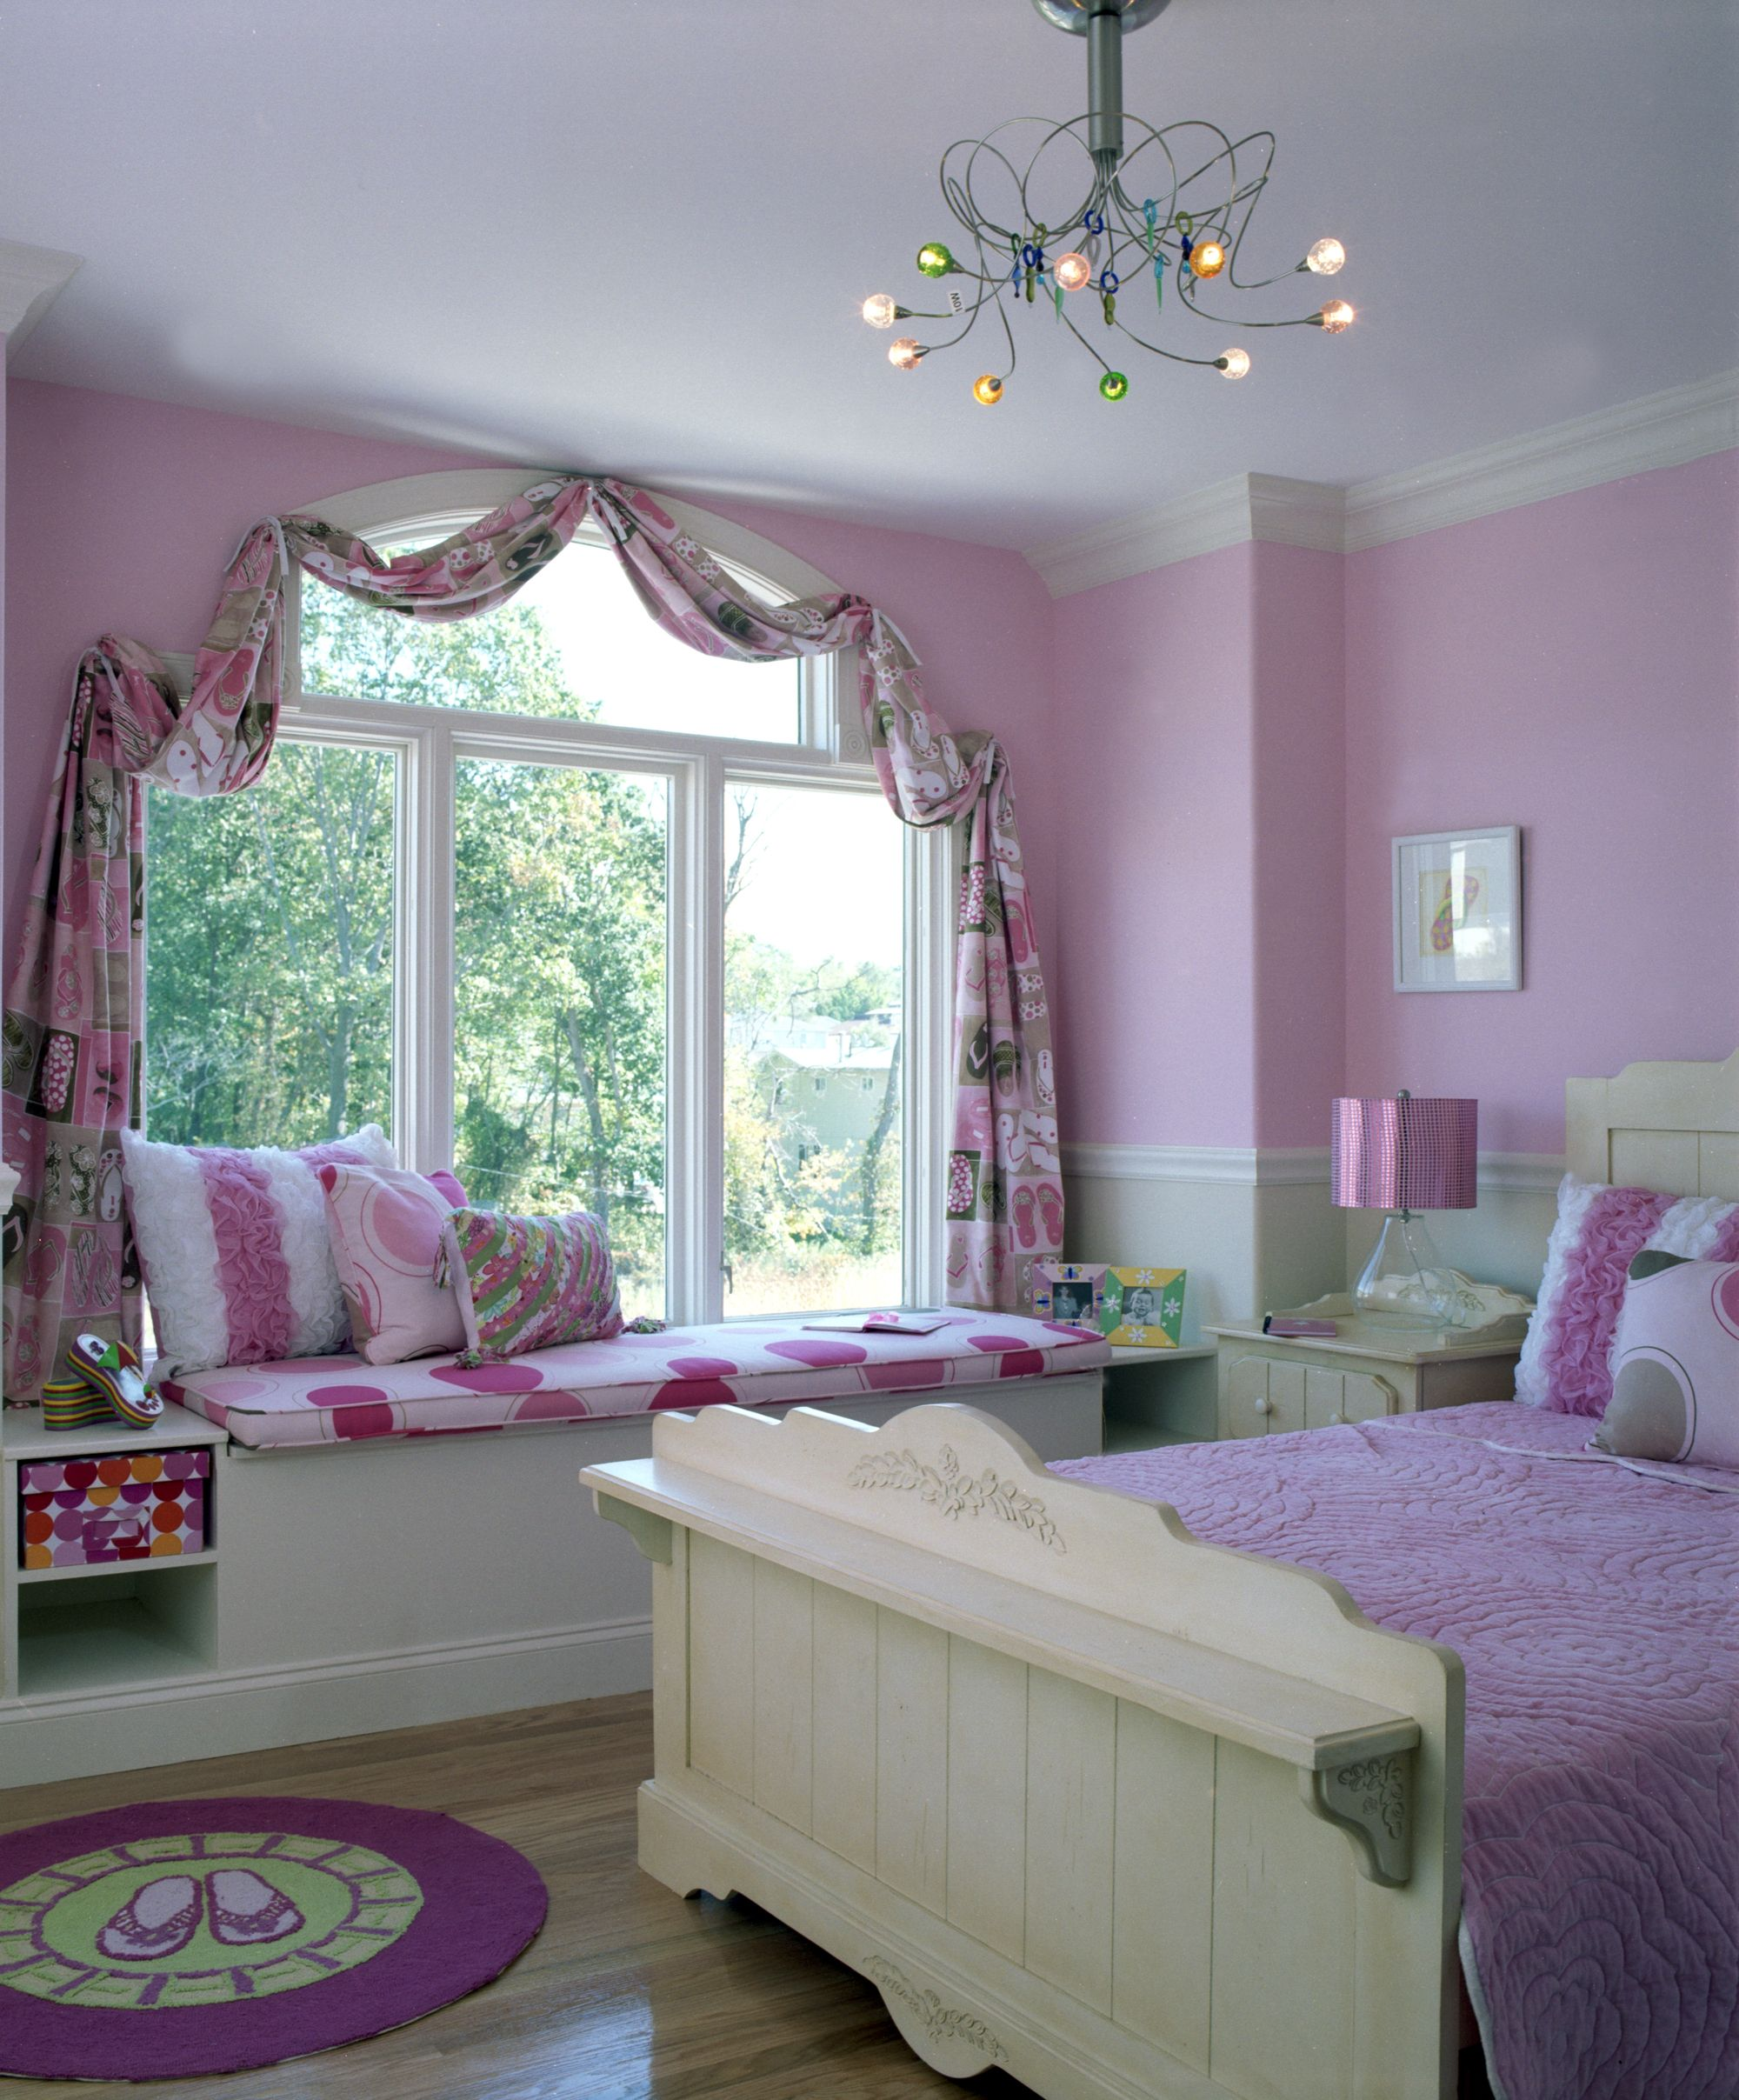 Bedroom Teenage Small Girls Room Purple Large Size: Window Treatment In Little Girl's Pink Bedroom.